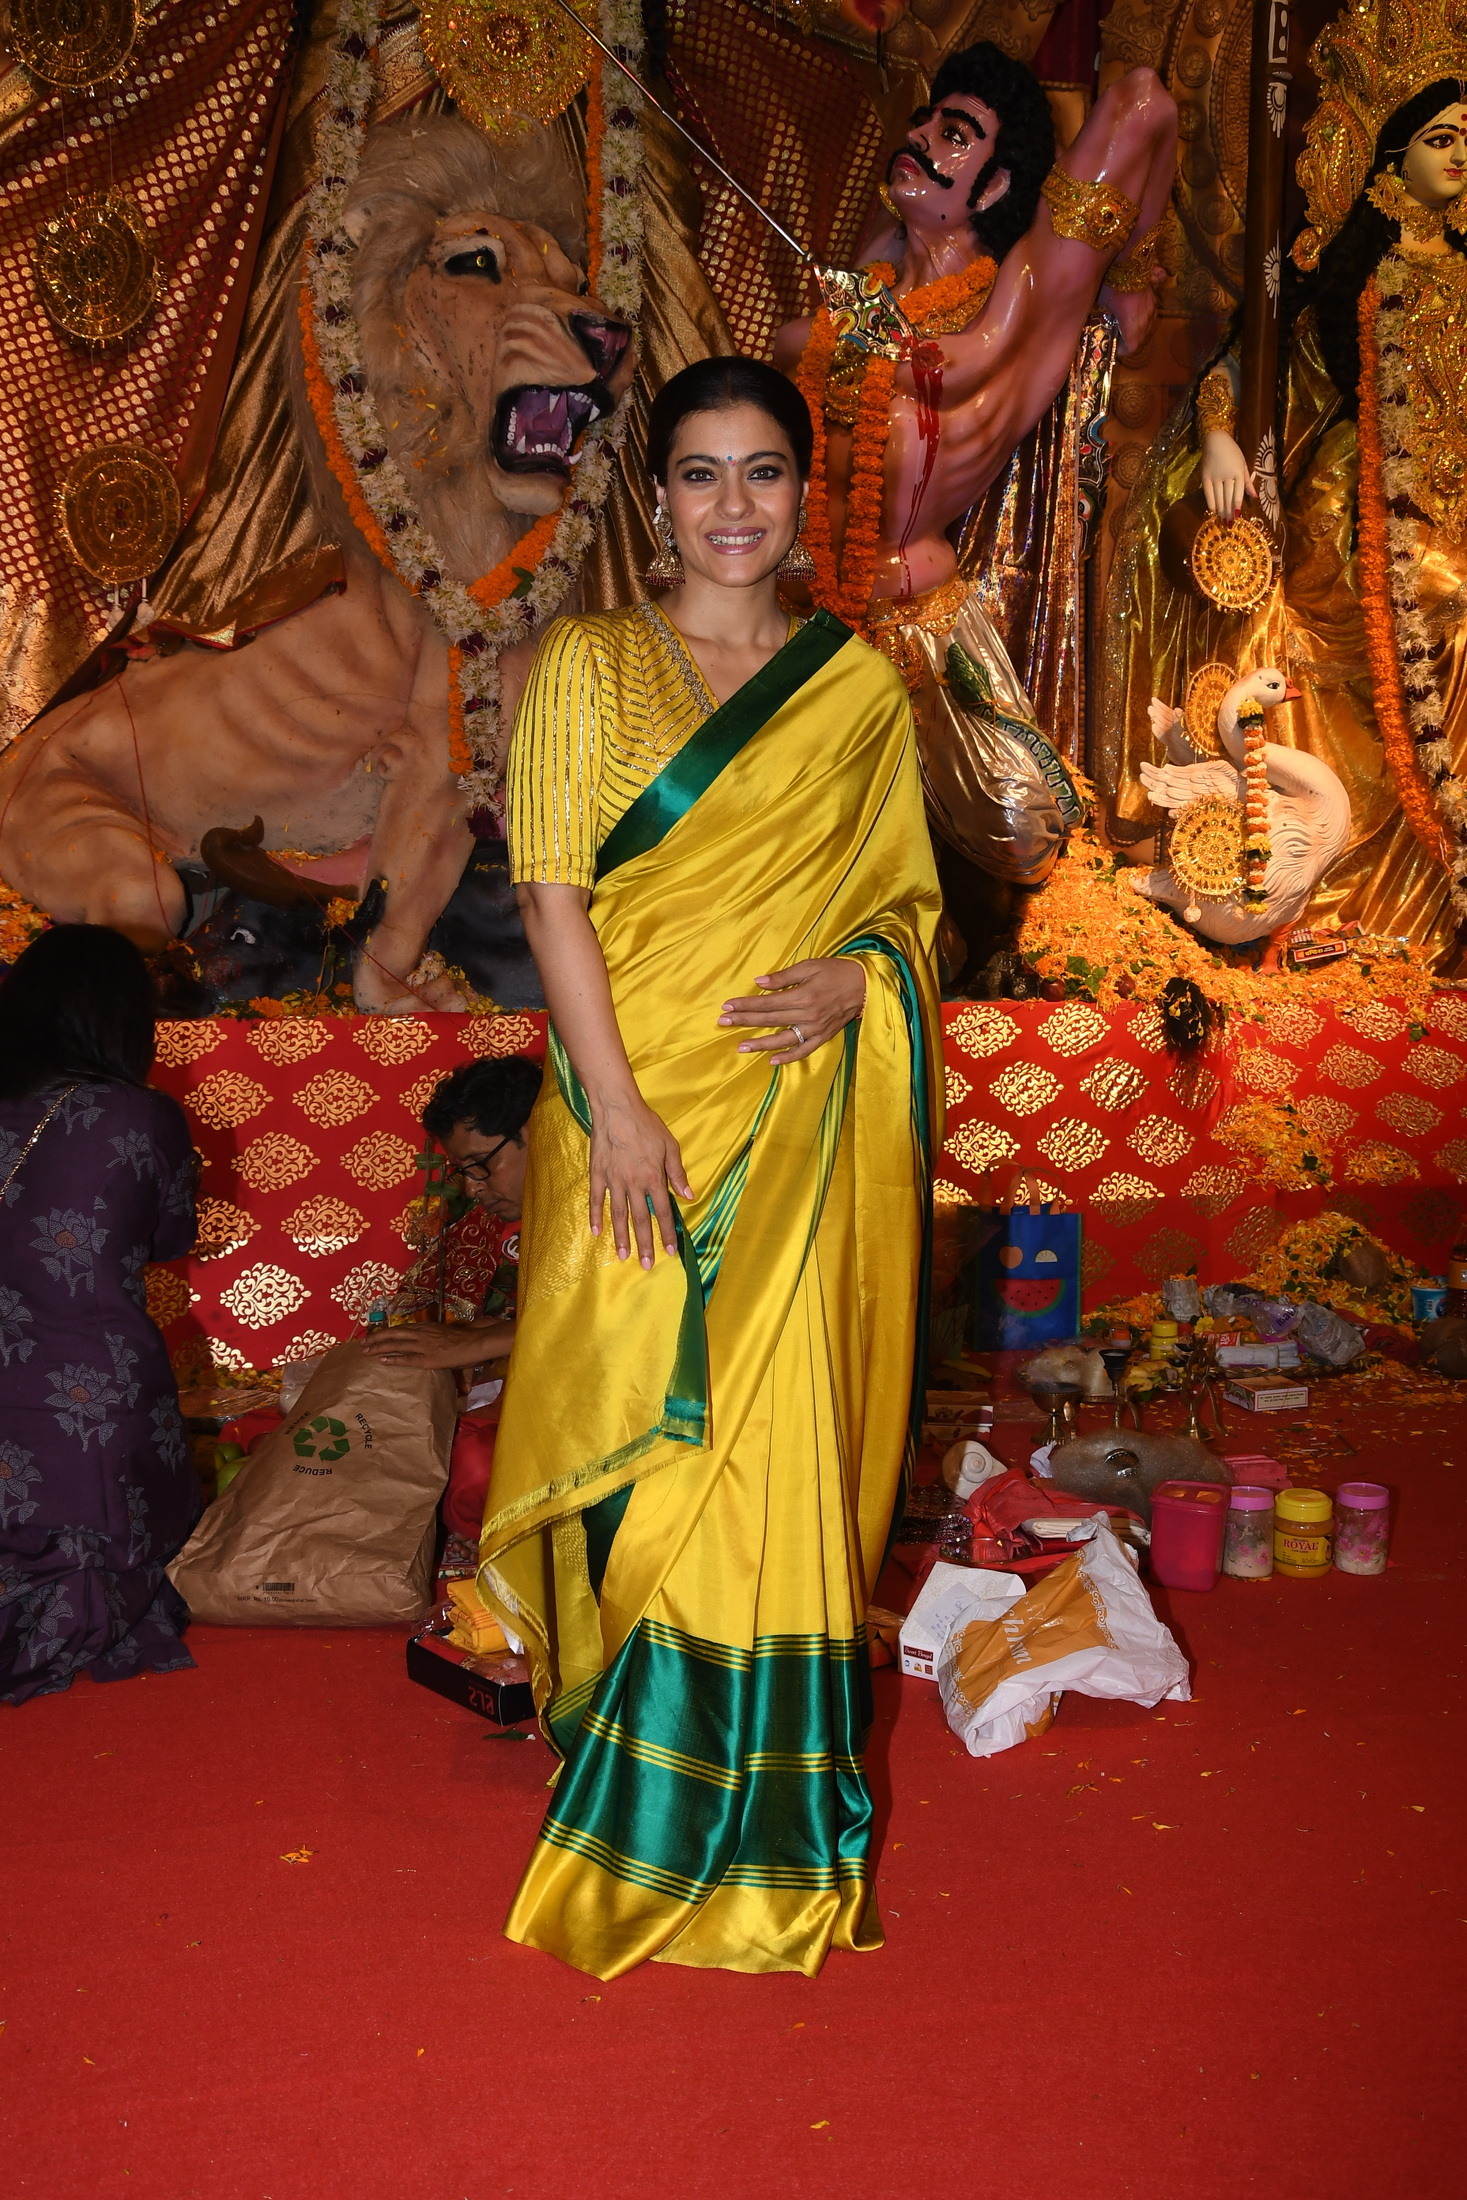 Kajol Devgan at North Bombay Sarbojanin Durga Puja Samiti's DURGA PUJA on Ashtami Day -Photo By Sachin Murdeshwar / GPN